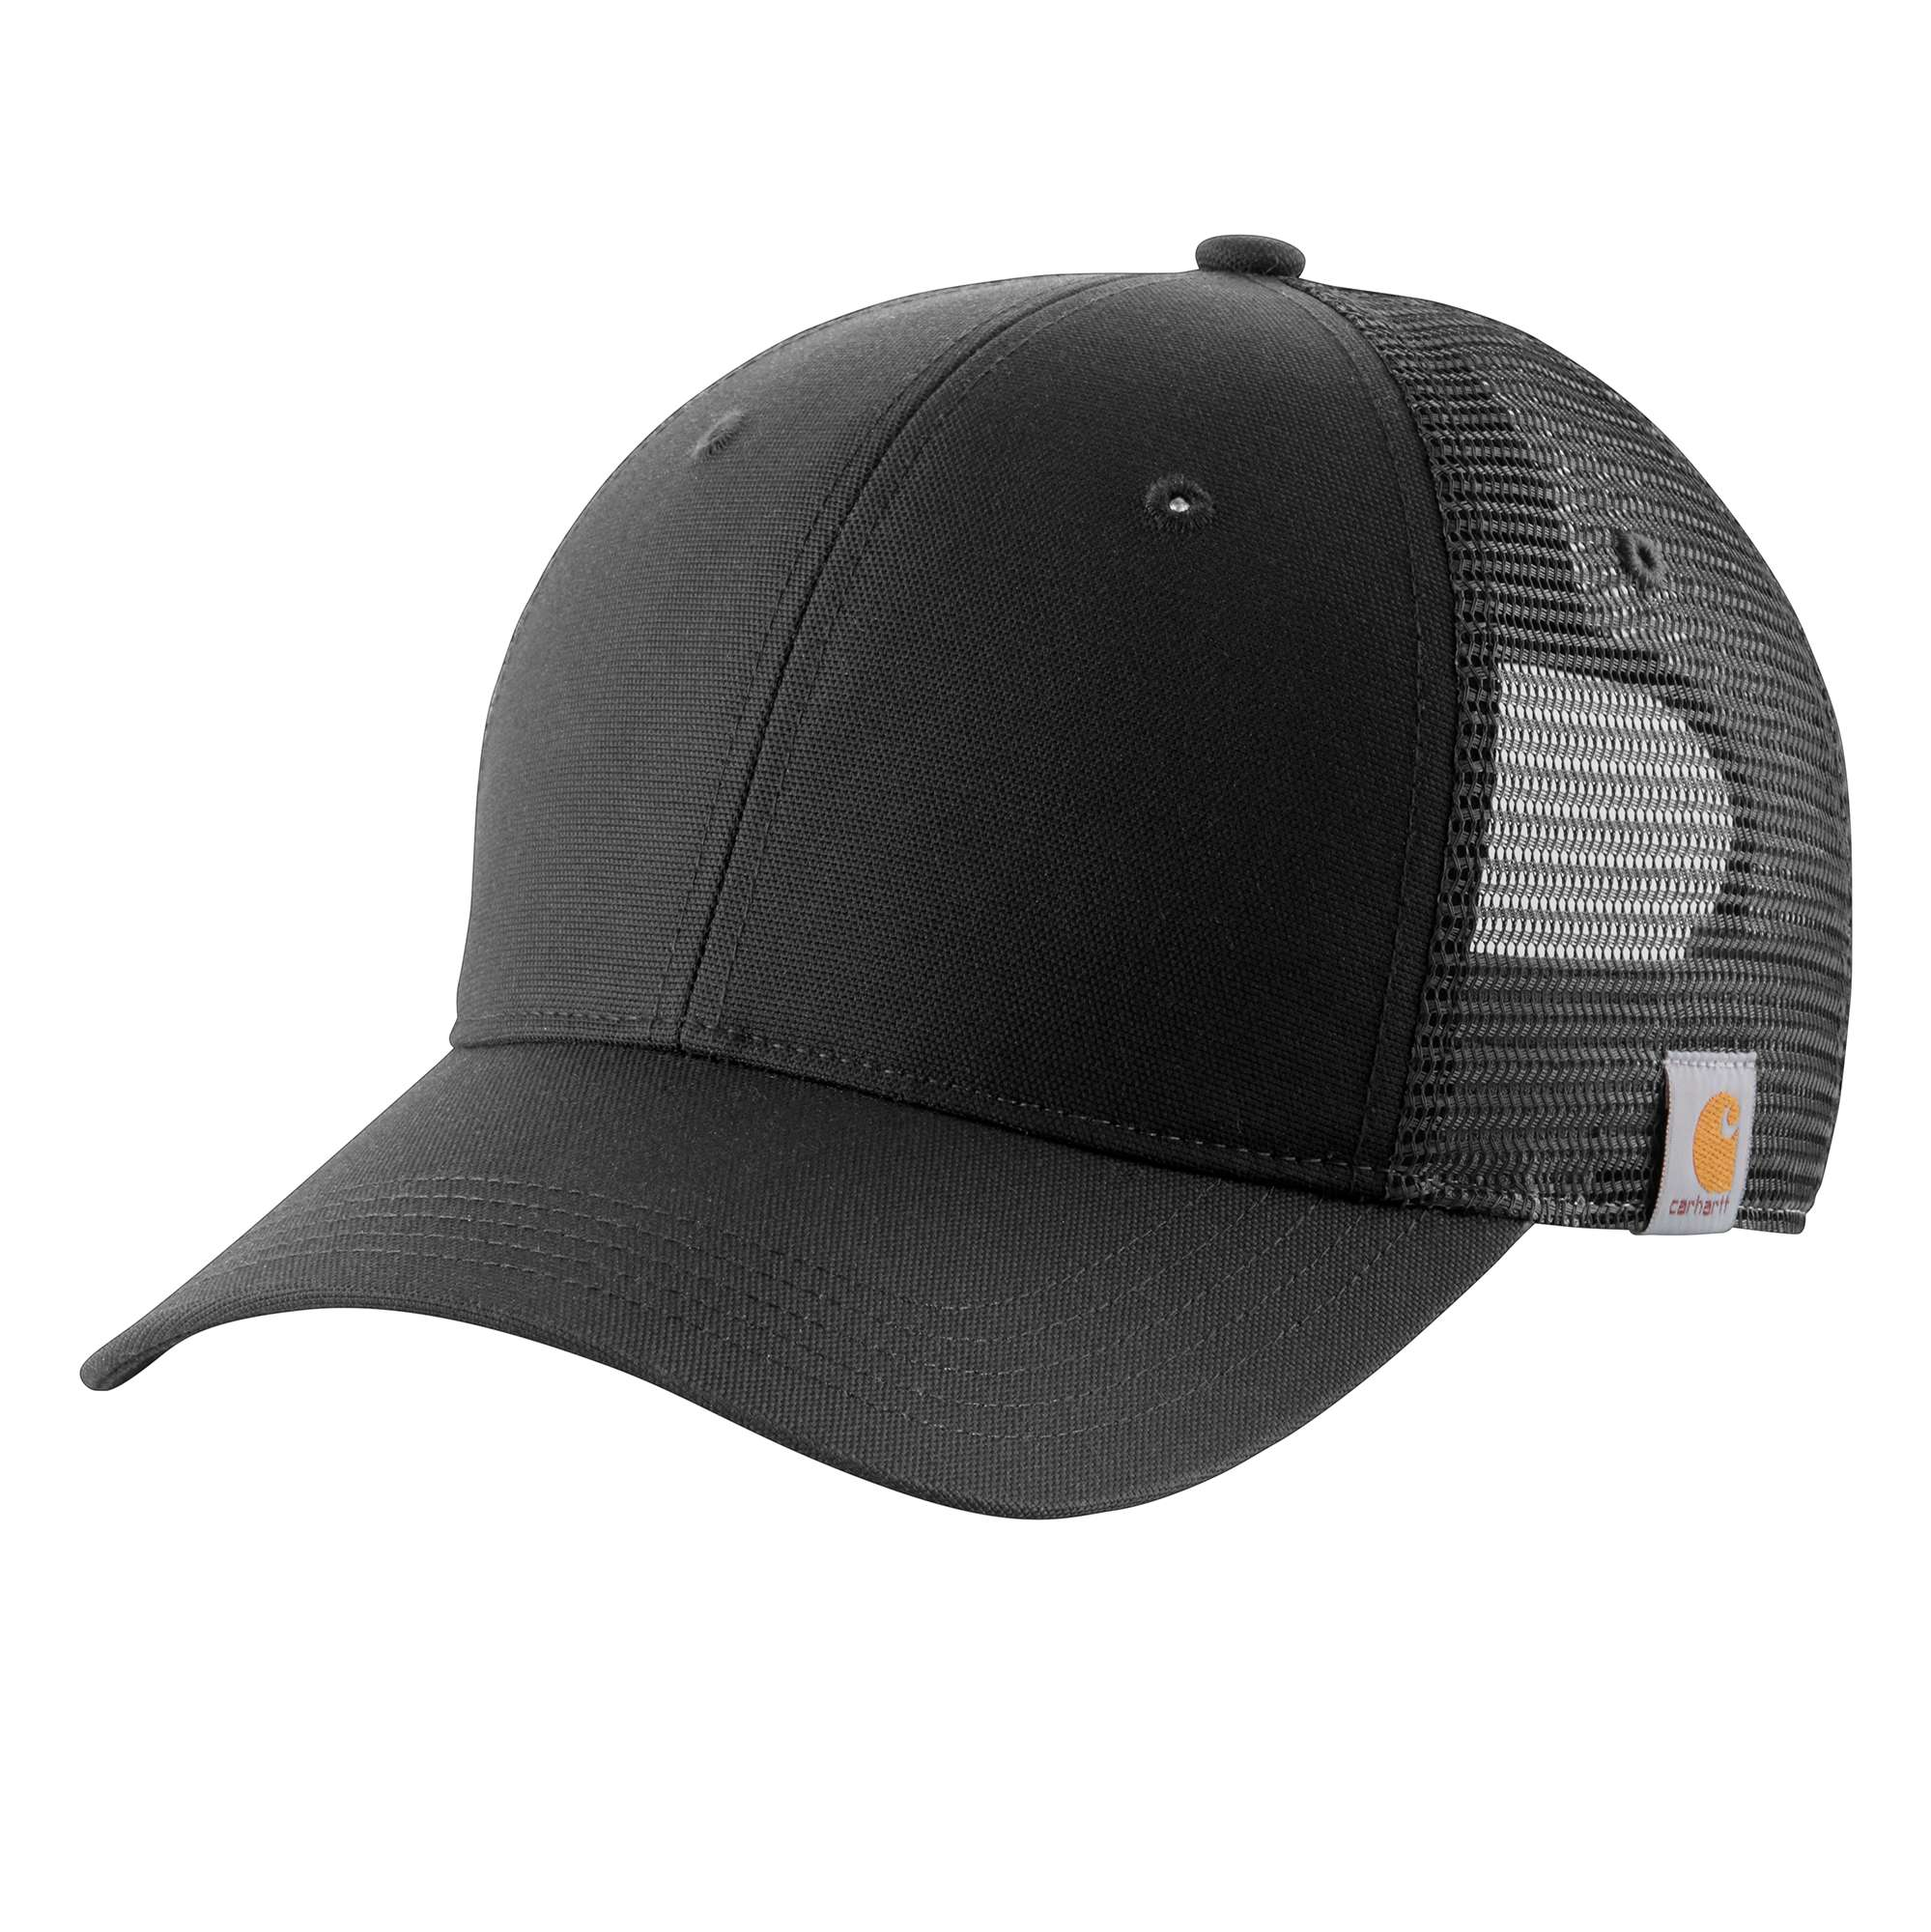 Carhartt Rugged Professional™ Series Baseball Cap